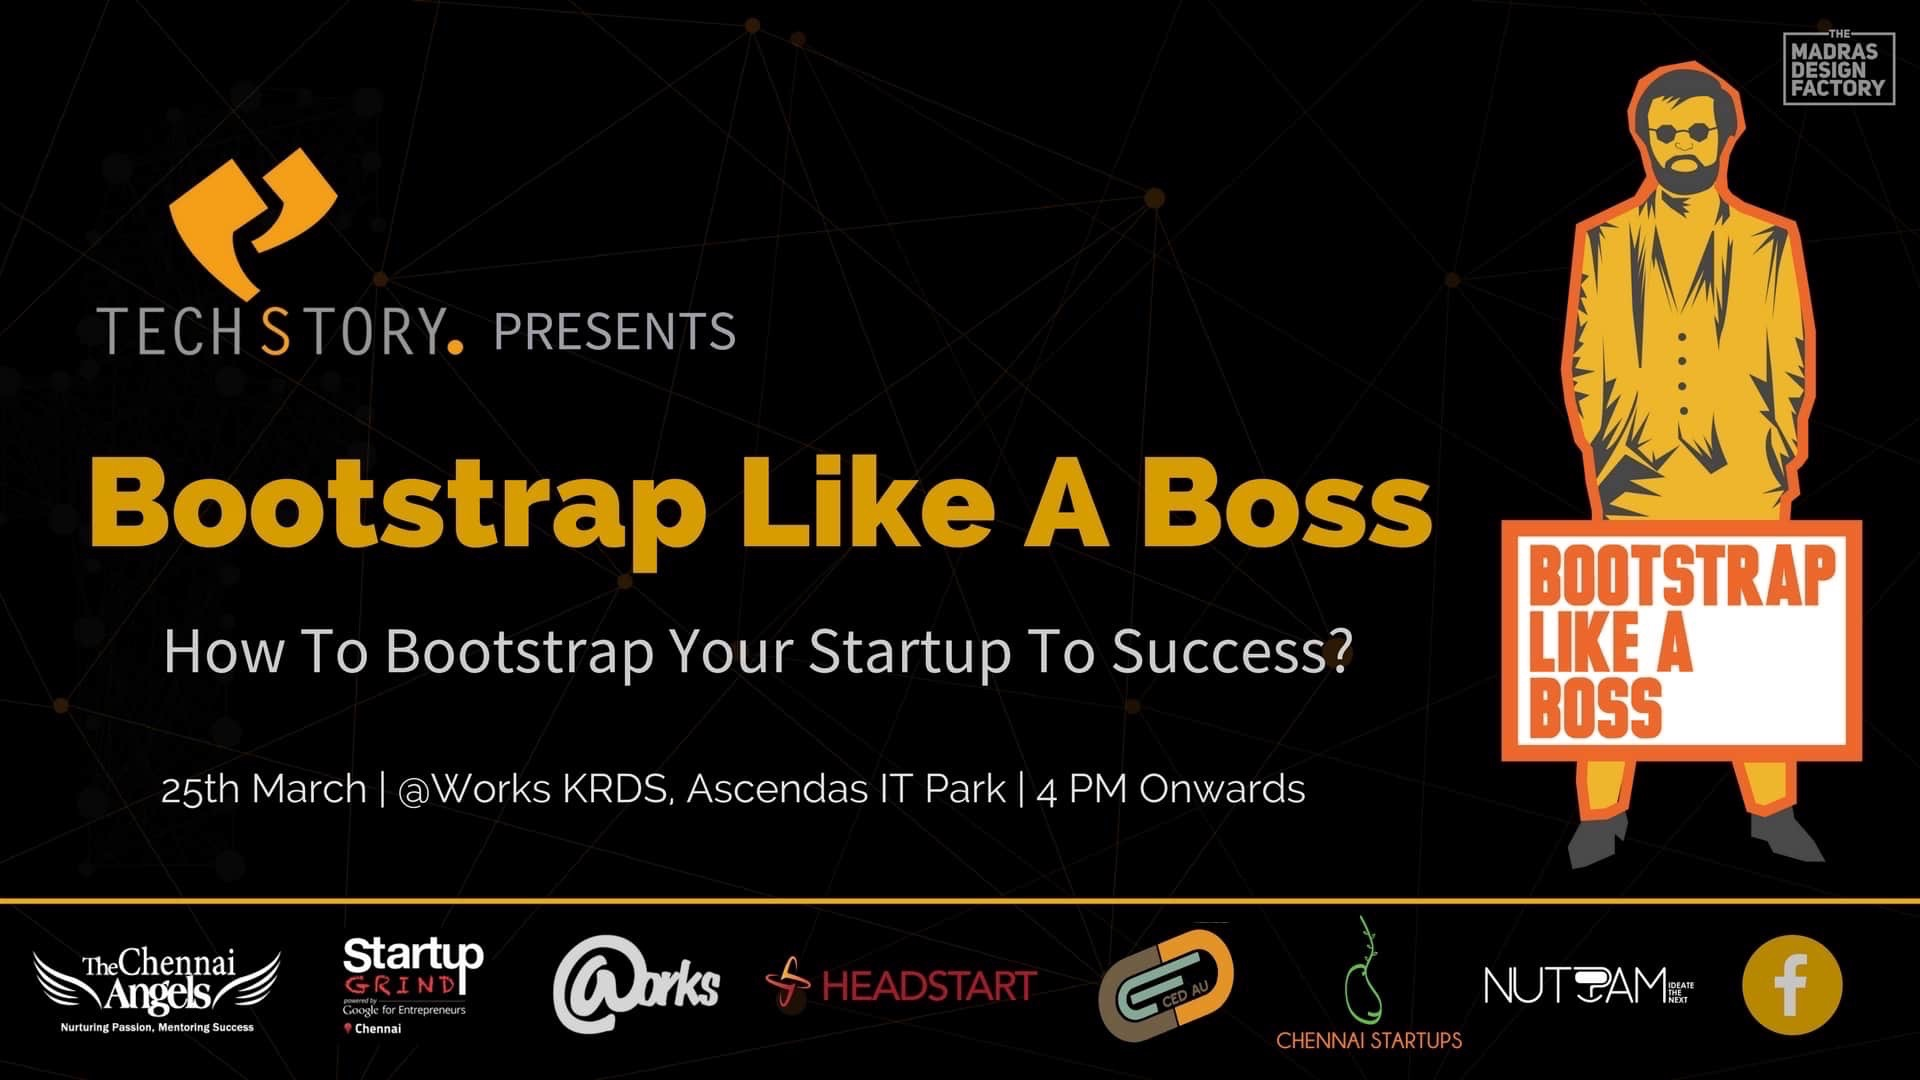 Our CEO explains How to Bootstrap like a Boss